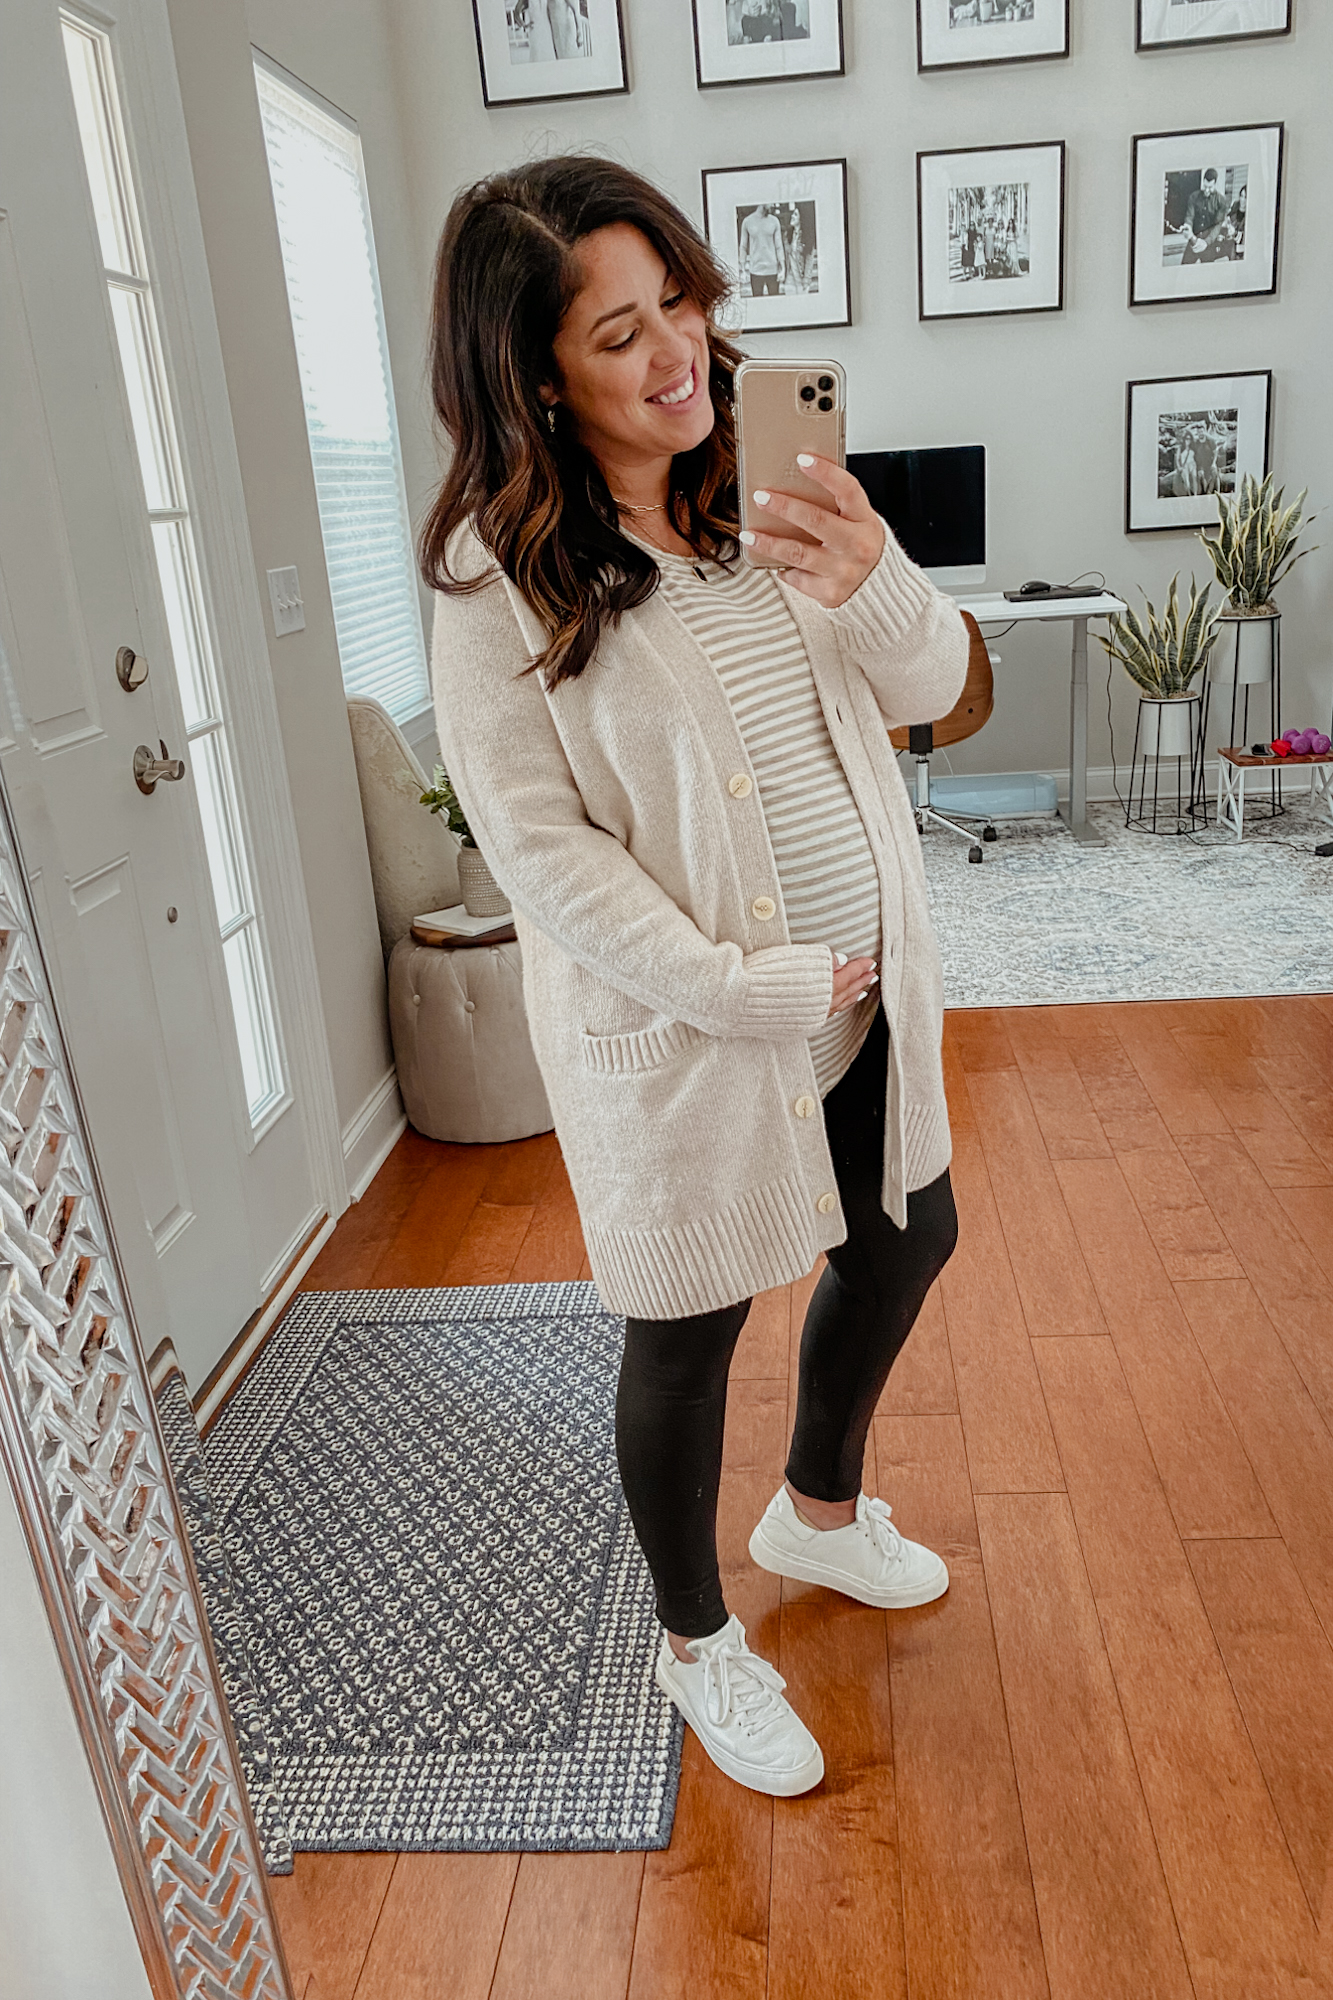 Maternity capsule wardrobe outfit inspiration including faux leather maternity leggings and a basic striped maternity t shirt.